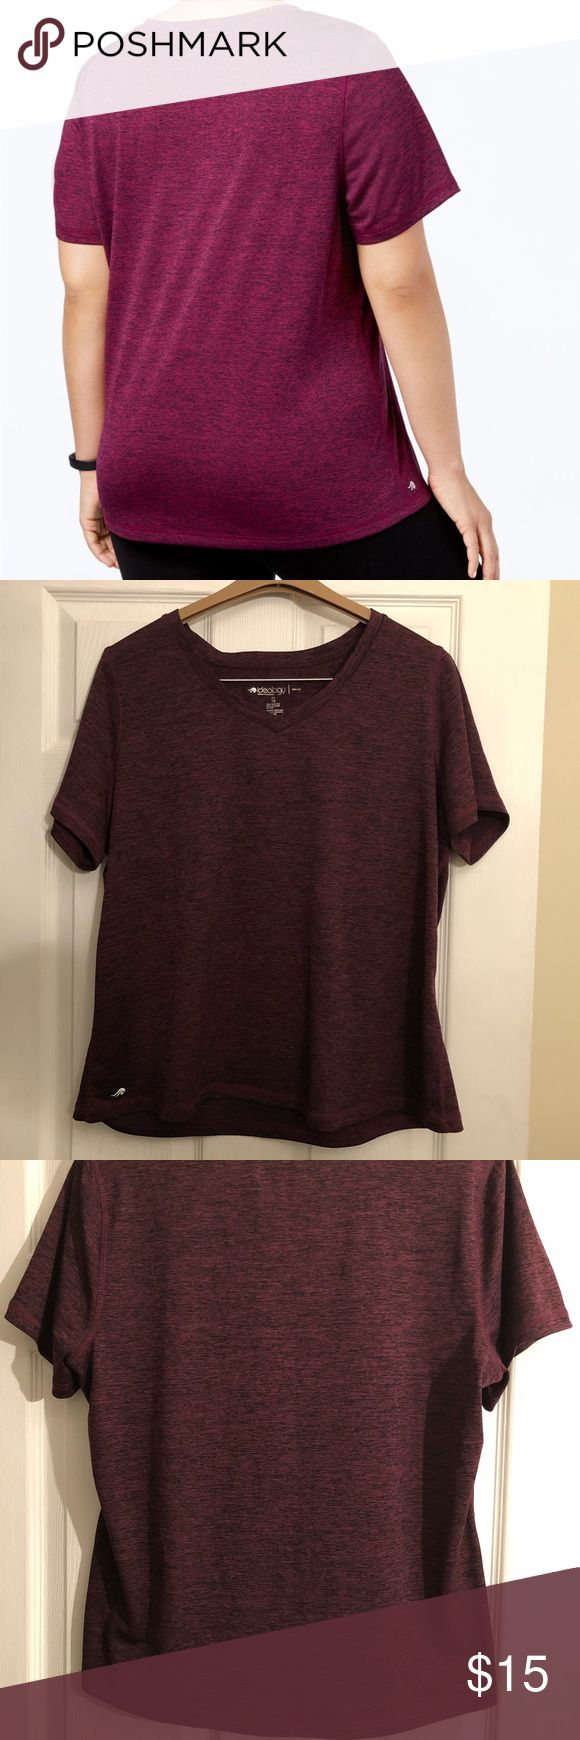 IDEOLOGY DRY FIT SHIRT This is a great work out shirt or even just for out door warm weather! Fast dry fabric help keeps sweat under control, easy fit, unlined, hits at hip & v-neck 💜 worn only once for a couple of hours, great condition like new! Ideology Tops Tees - Short Sleeve